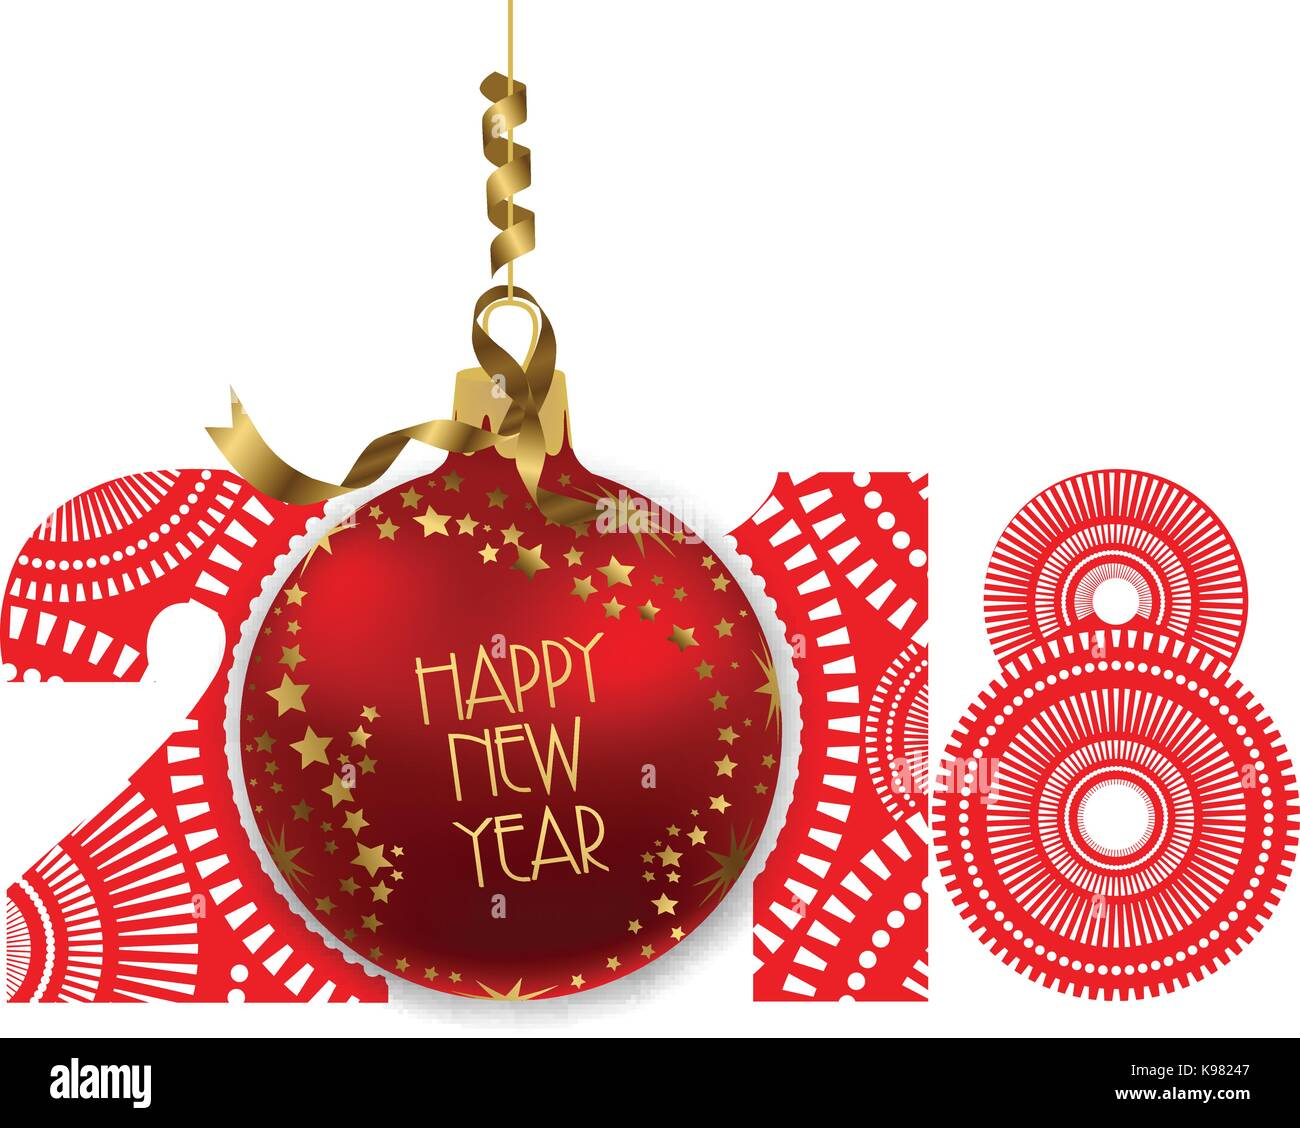 vector illustration of red ball isolated on white background happy new year 2018 theme